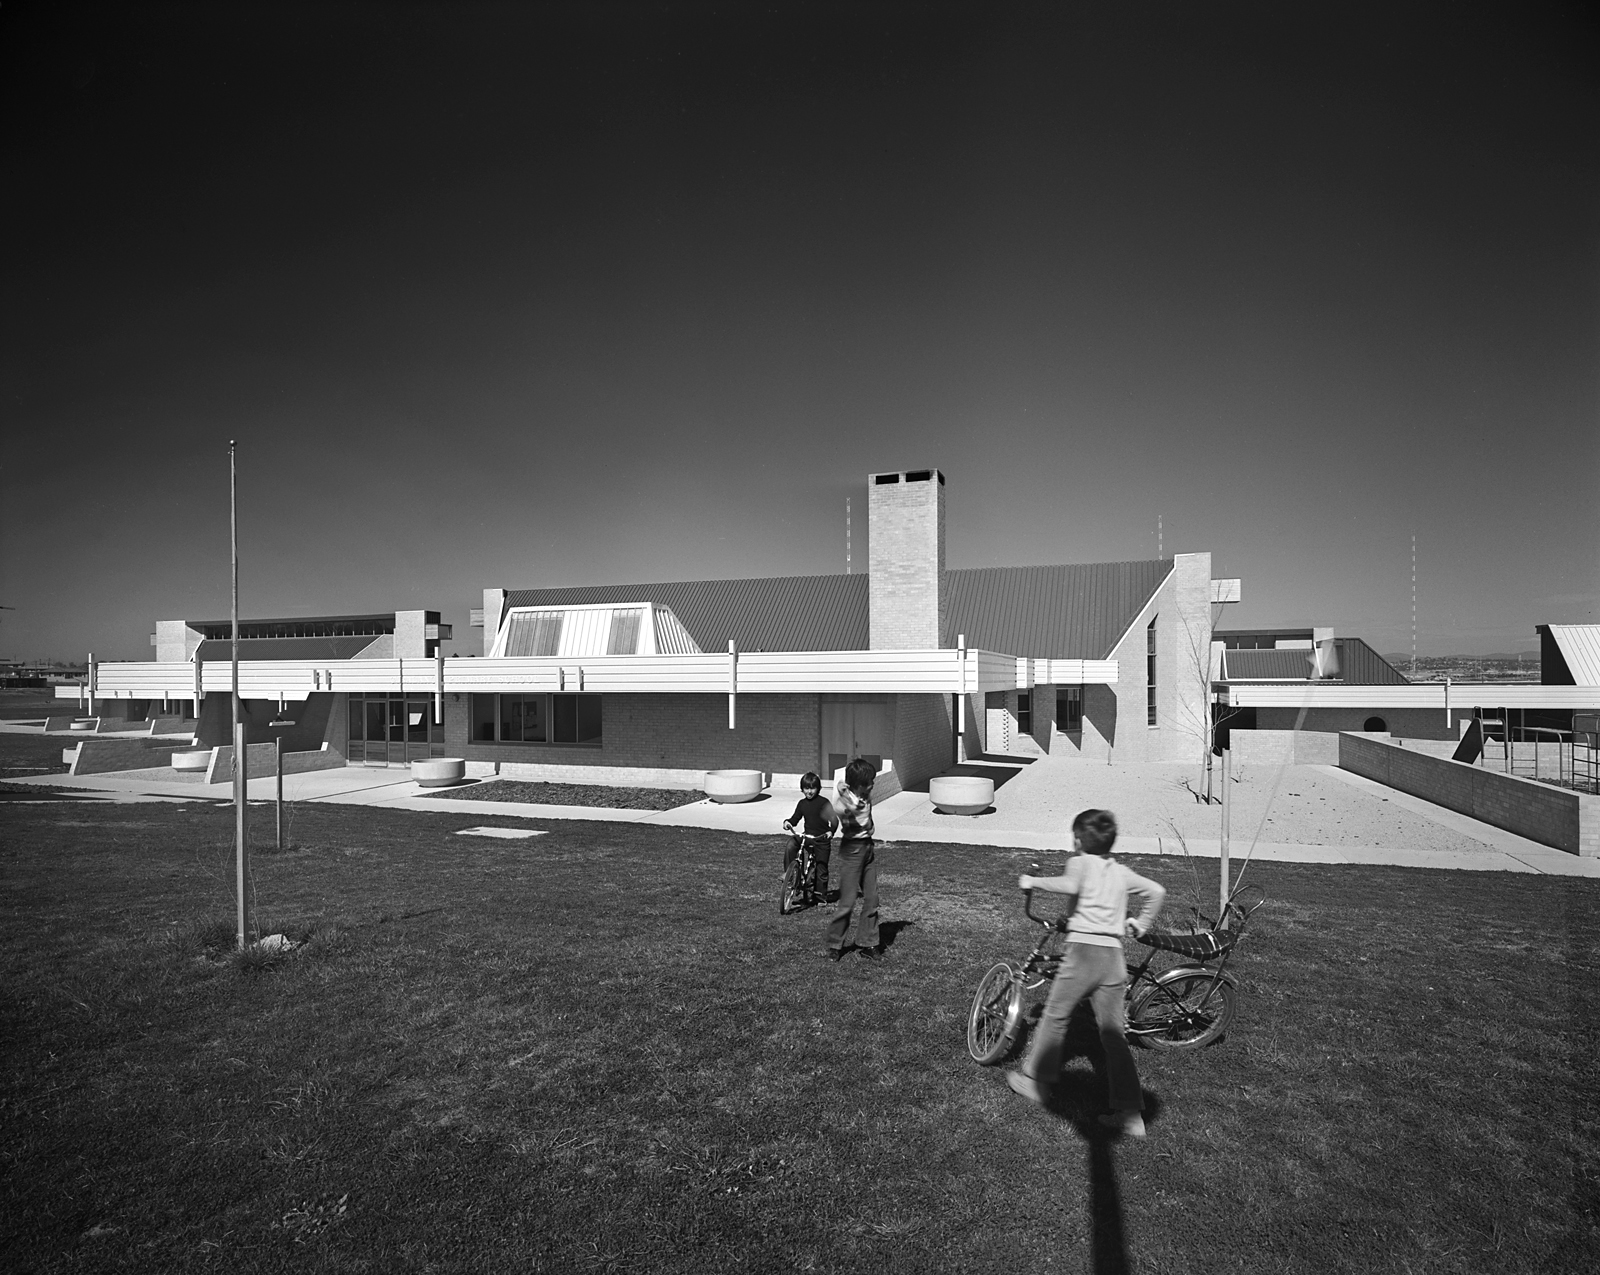 Figure 4. Giralang Primary School, 1975. Photo by Max Dupain, courtesy of Enrico Taglietti.